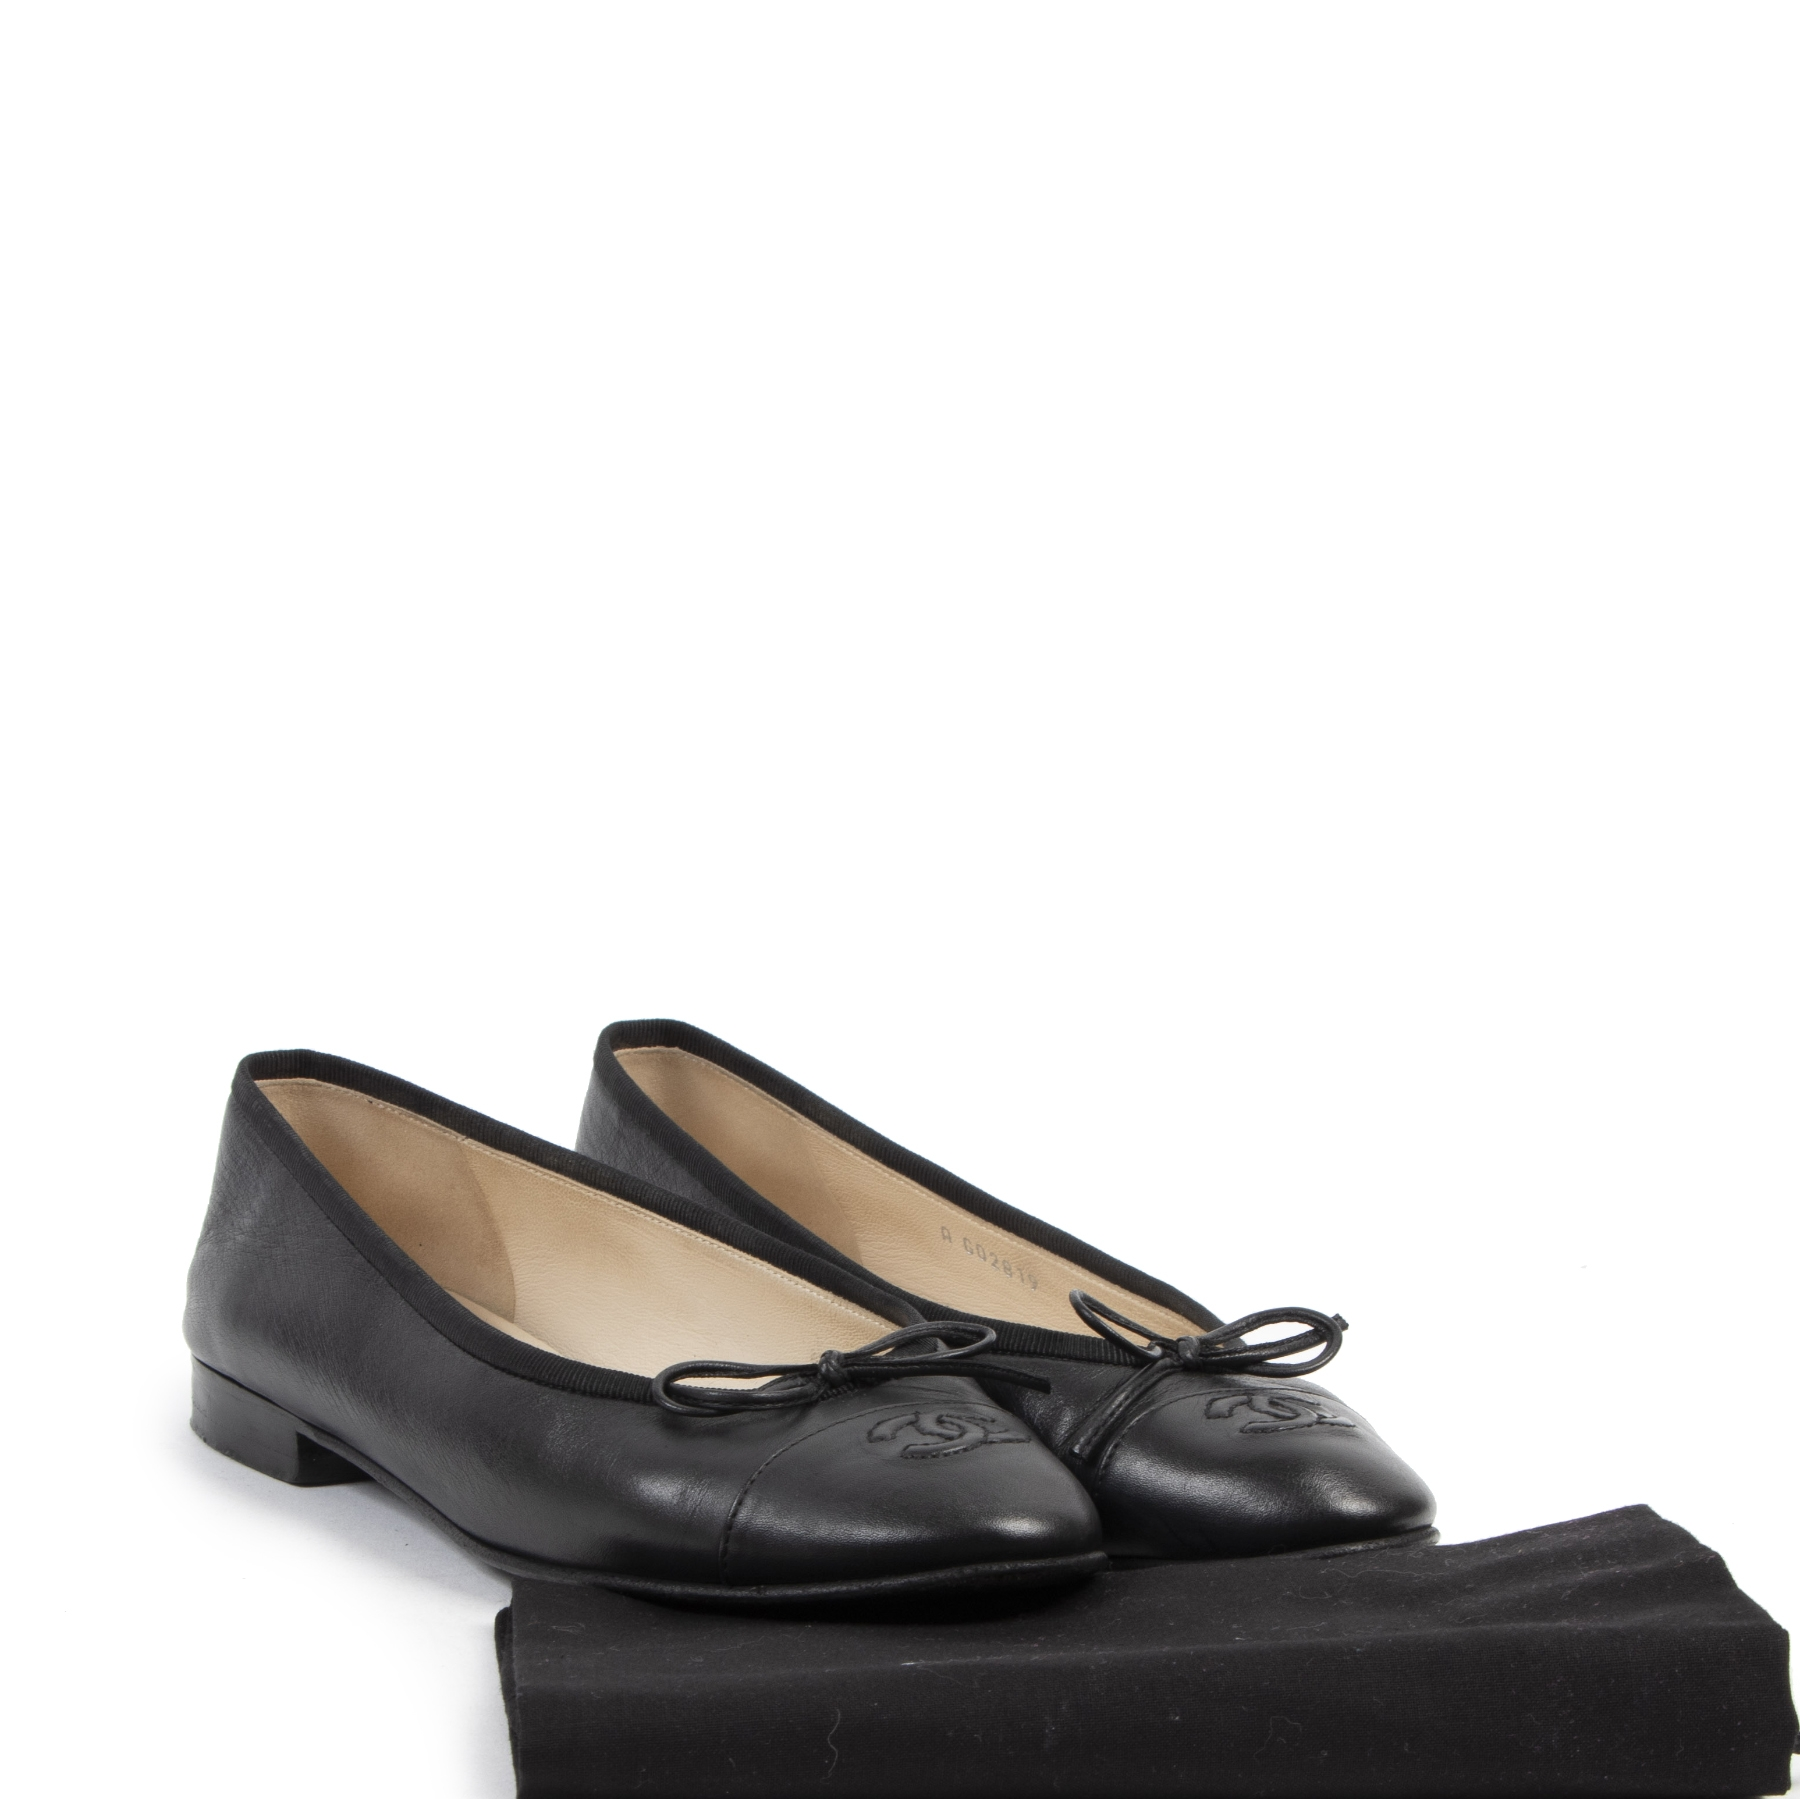 Authentieke tweedehands vintage Chanel Black Leather Flats - Size 37,5 Koop online webshop LabelLOV